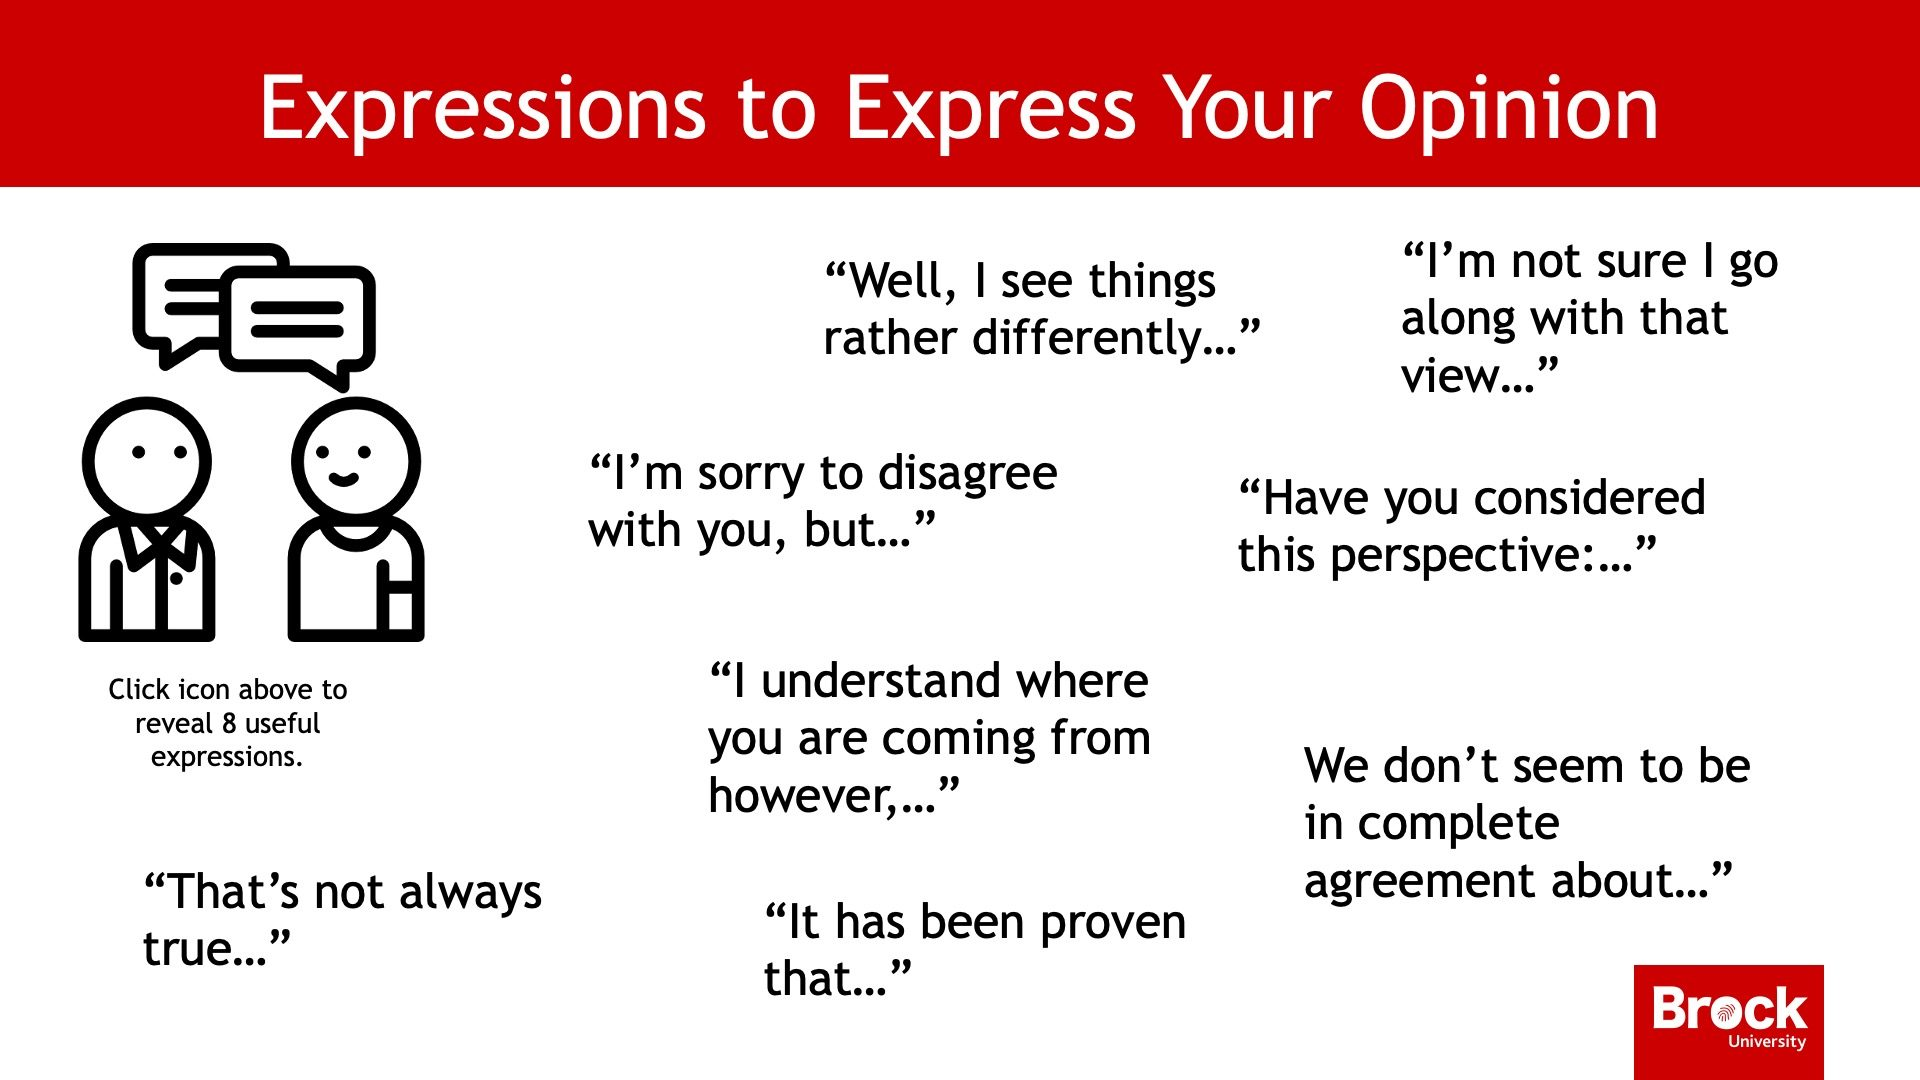 Expressions to express your opinion